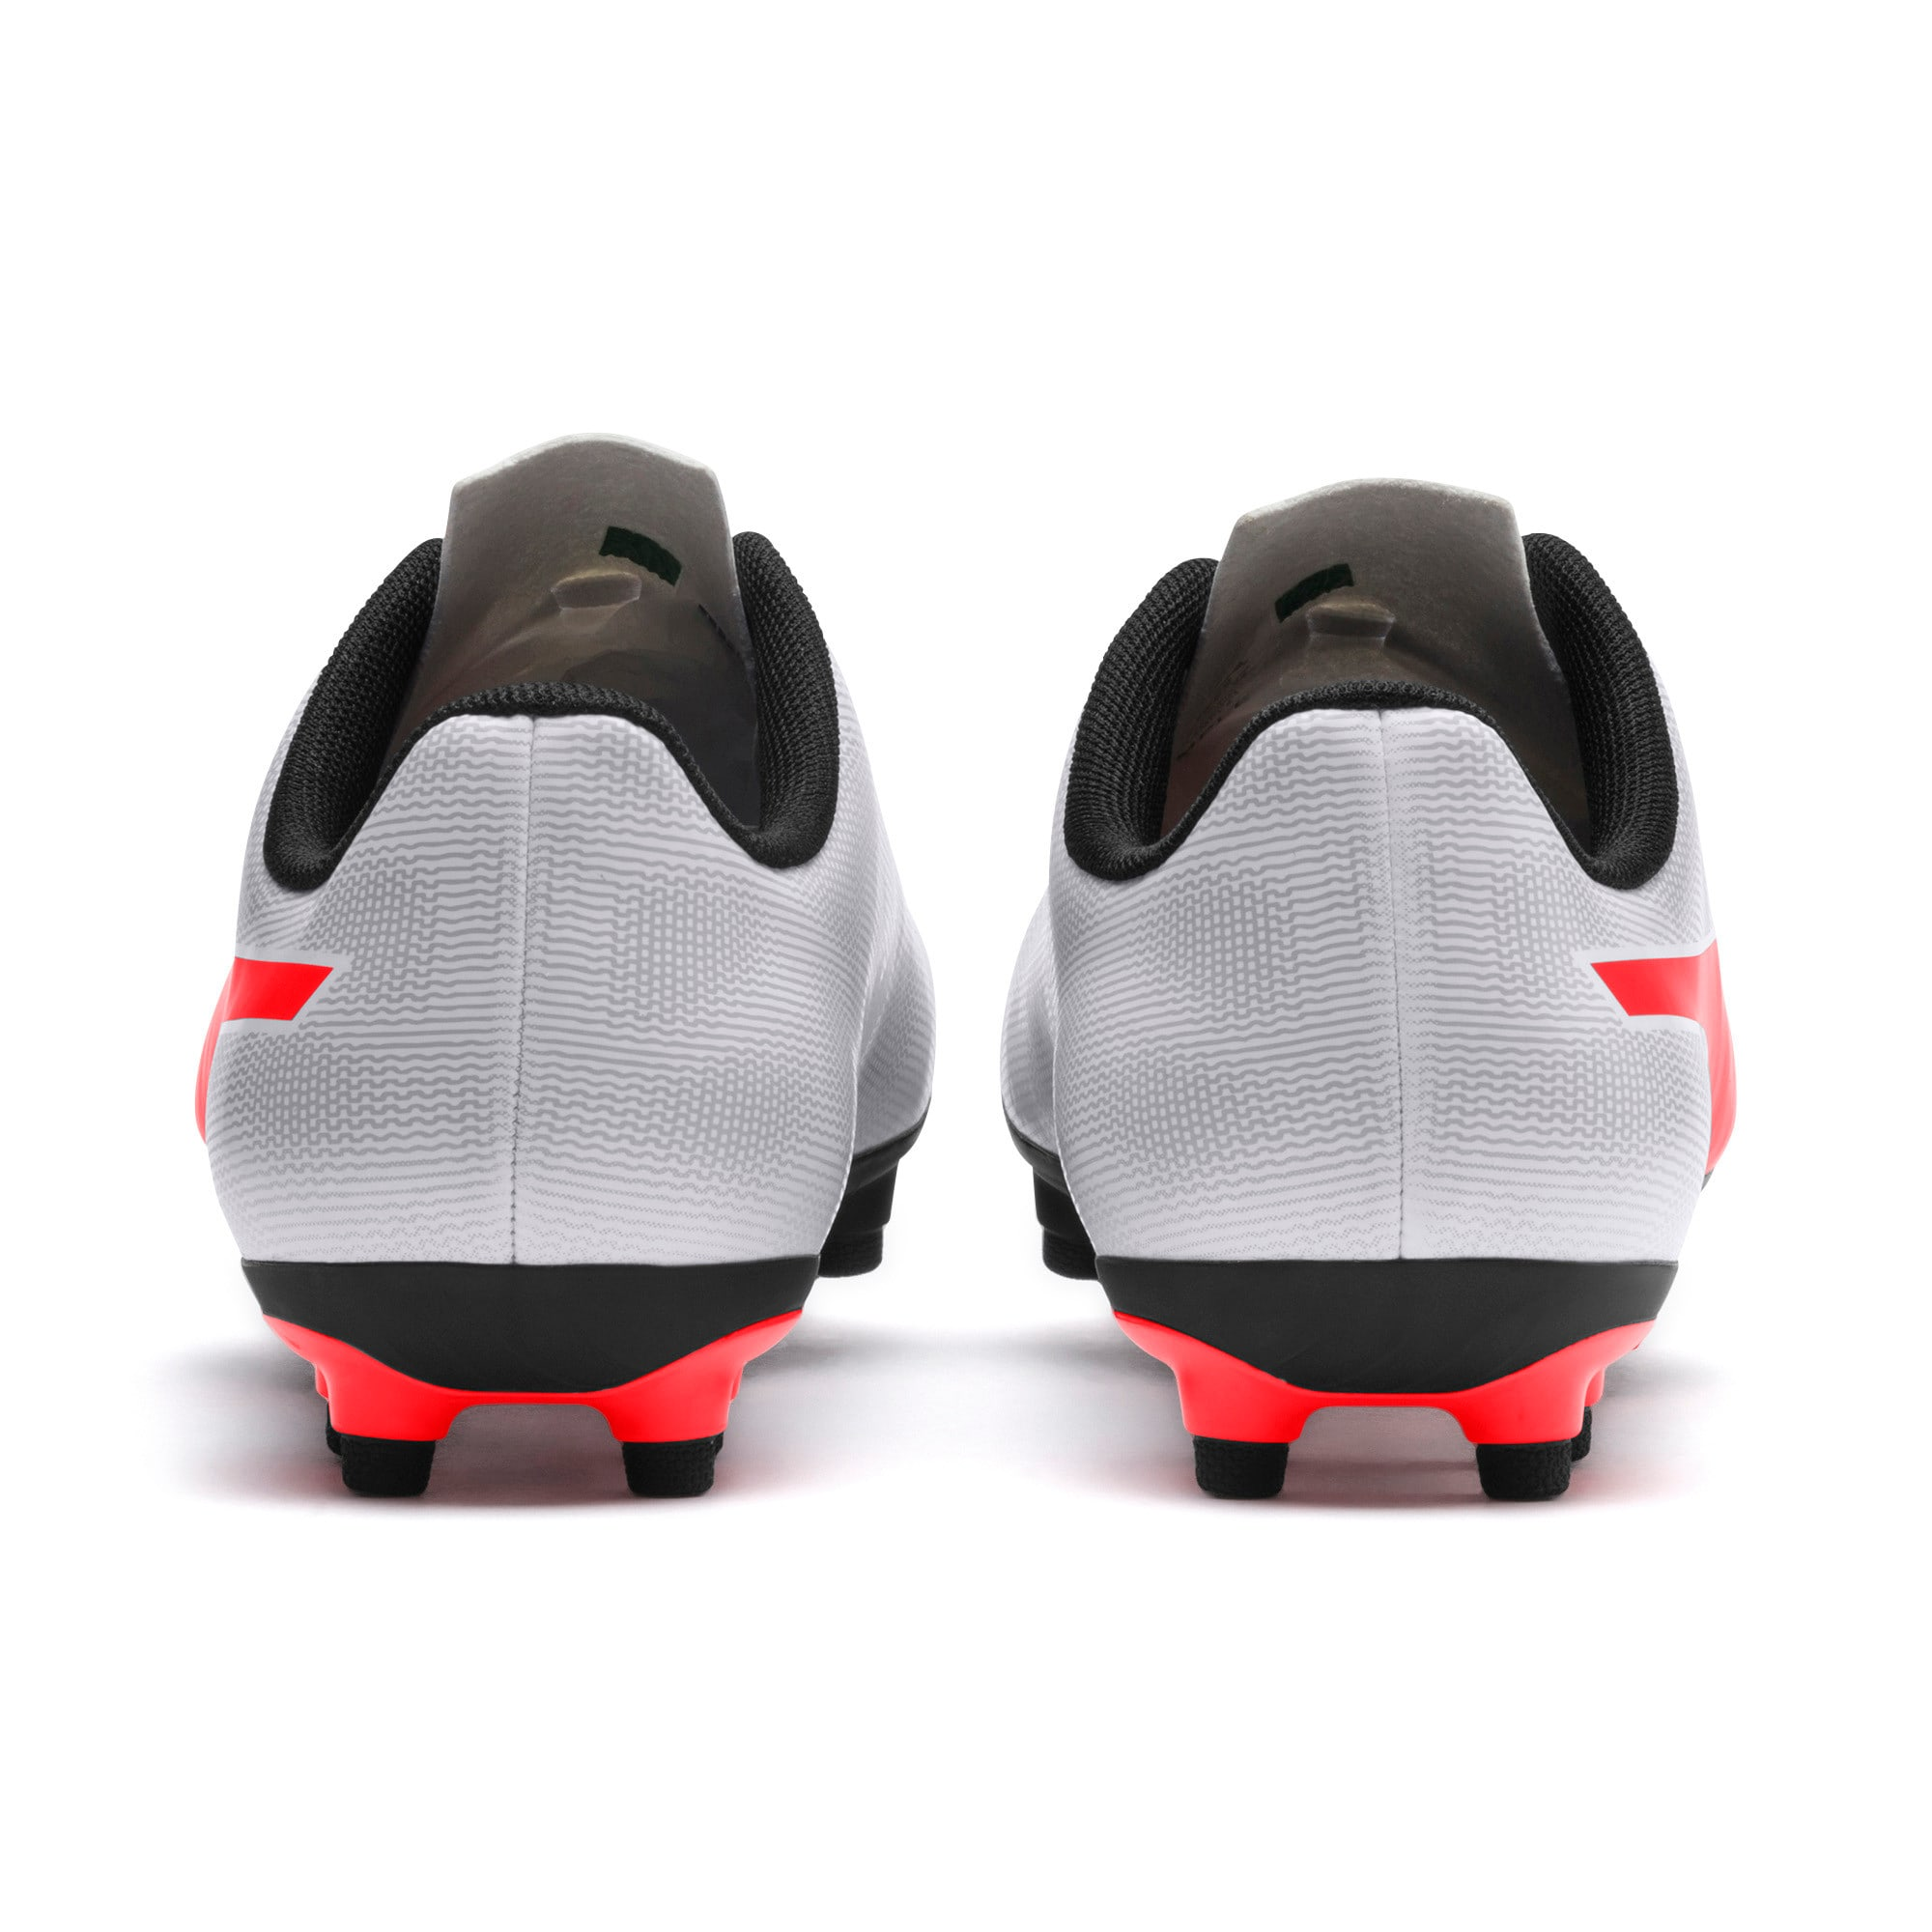 Thumbnail 2 of Rapido FG Youth Football Boots, White-Gray-Black-Red Blast, medium-IND